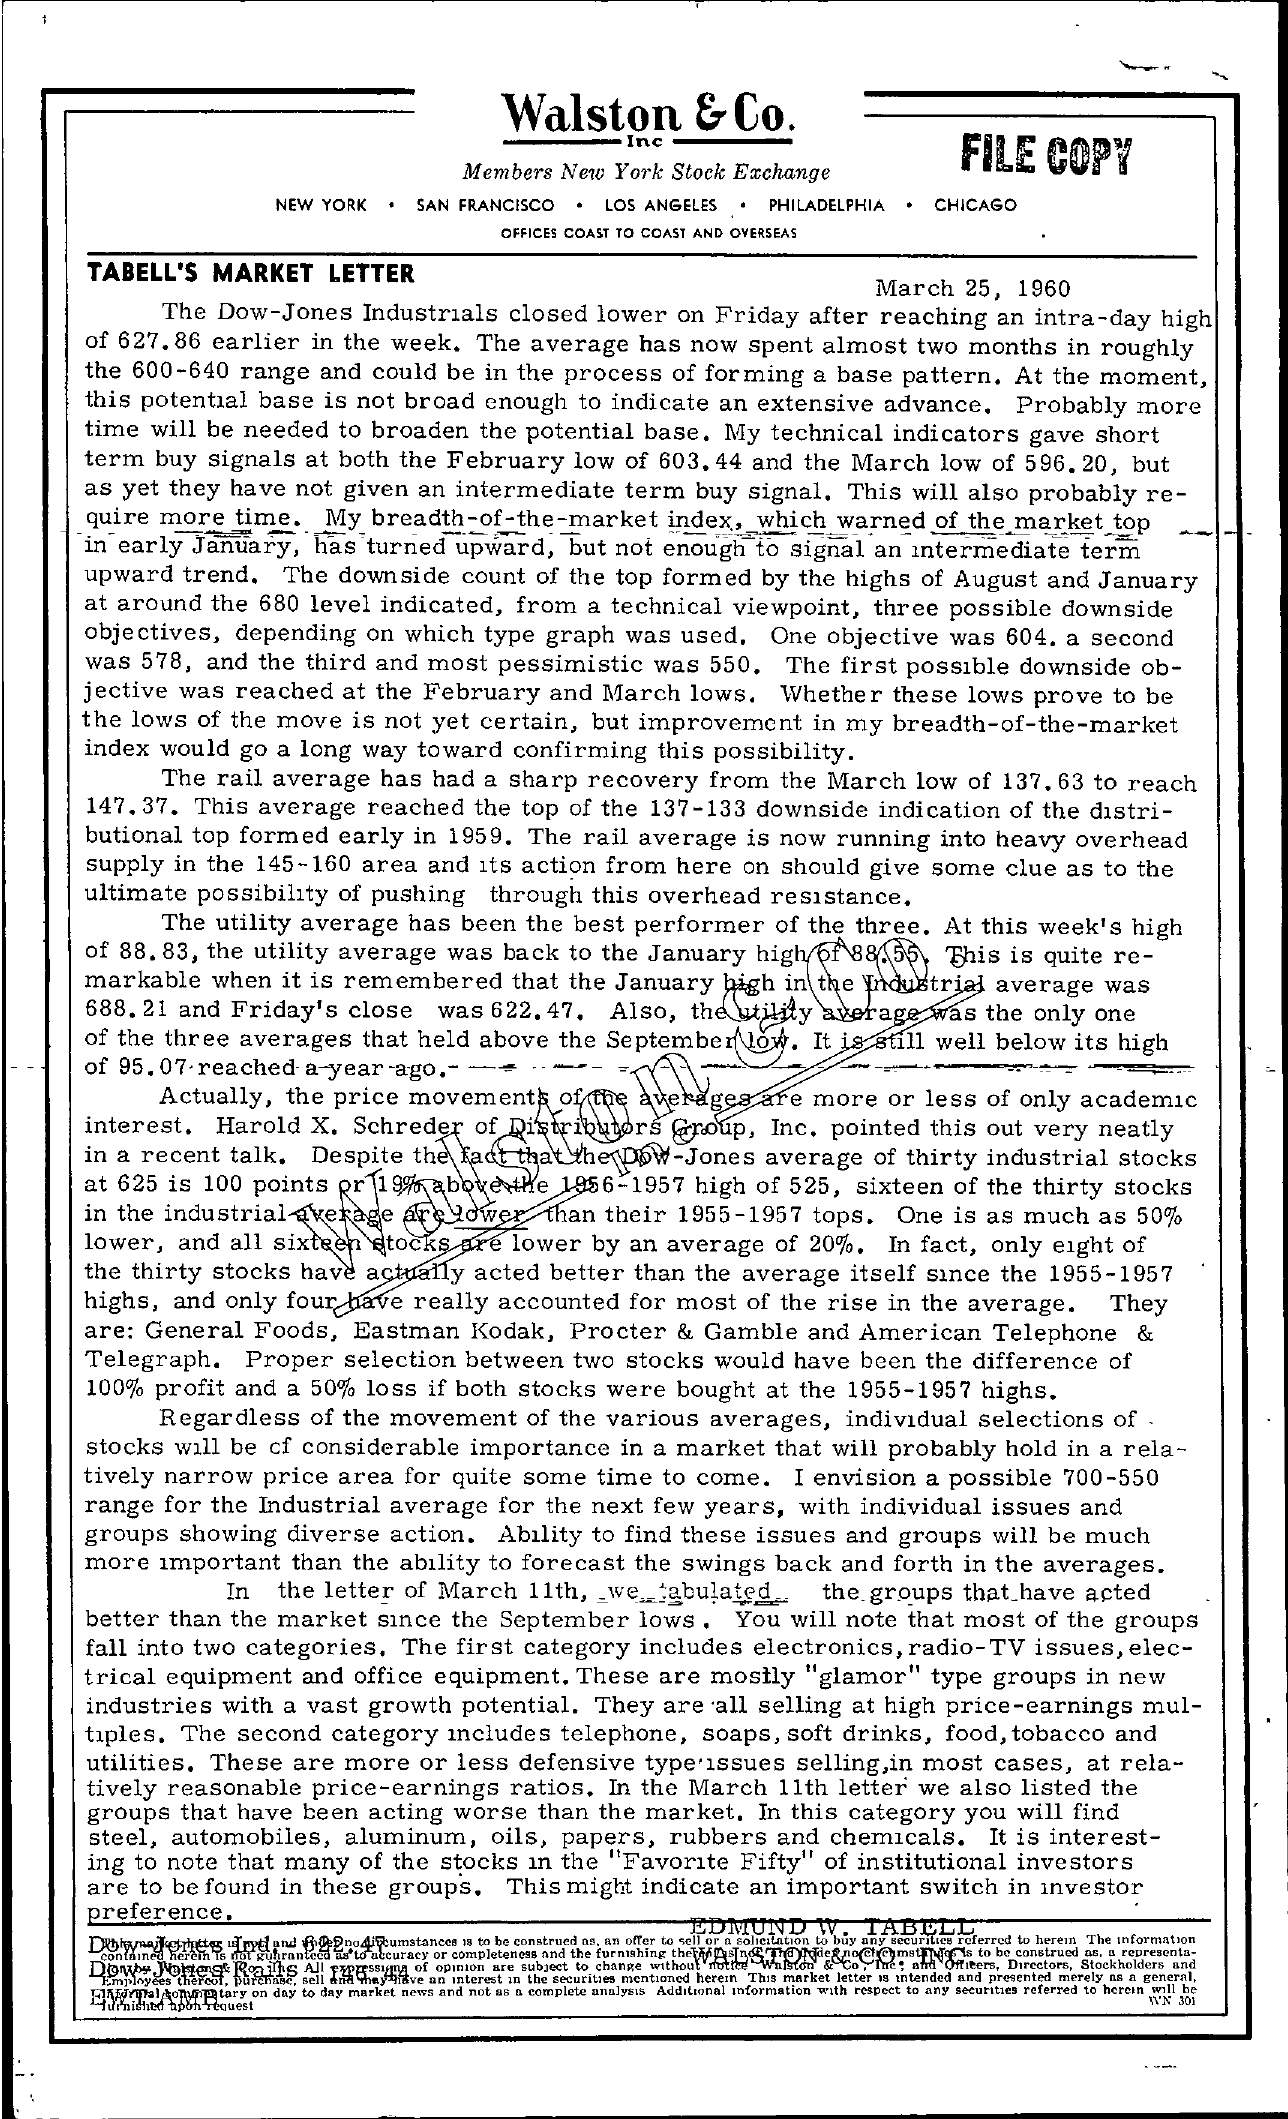 Tabell's Market Letter - March 25, 1960